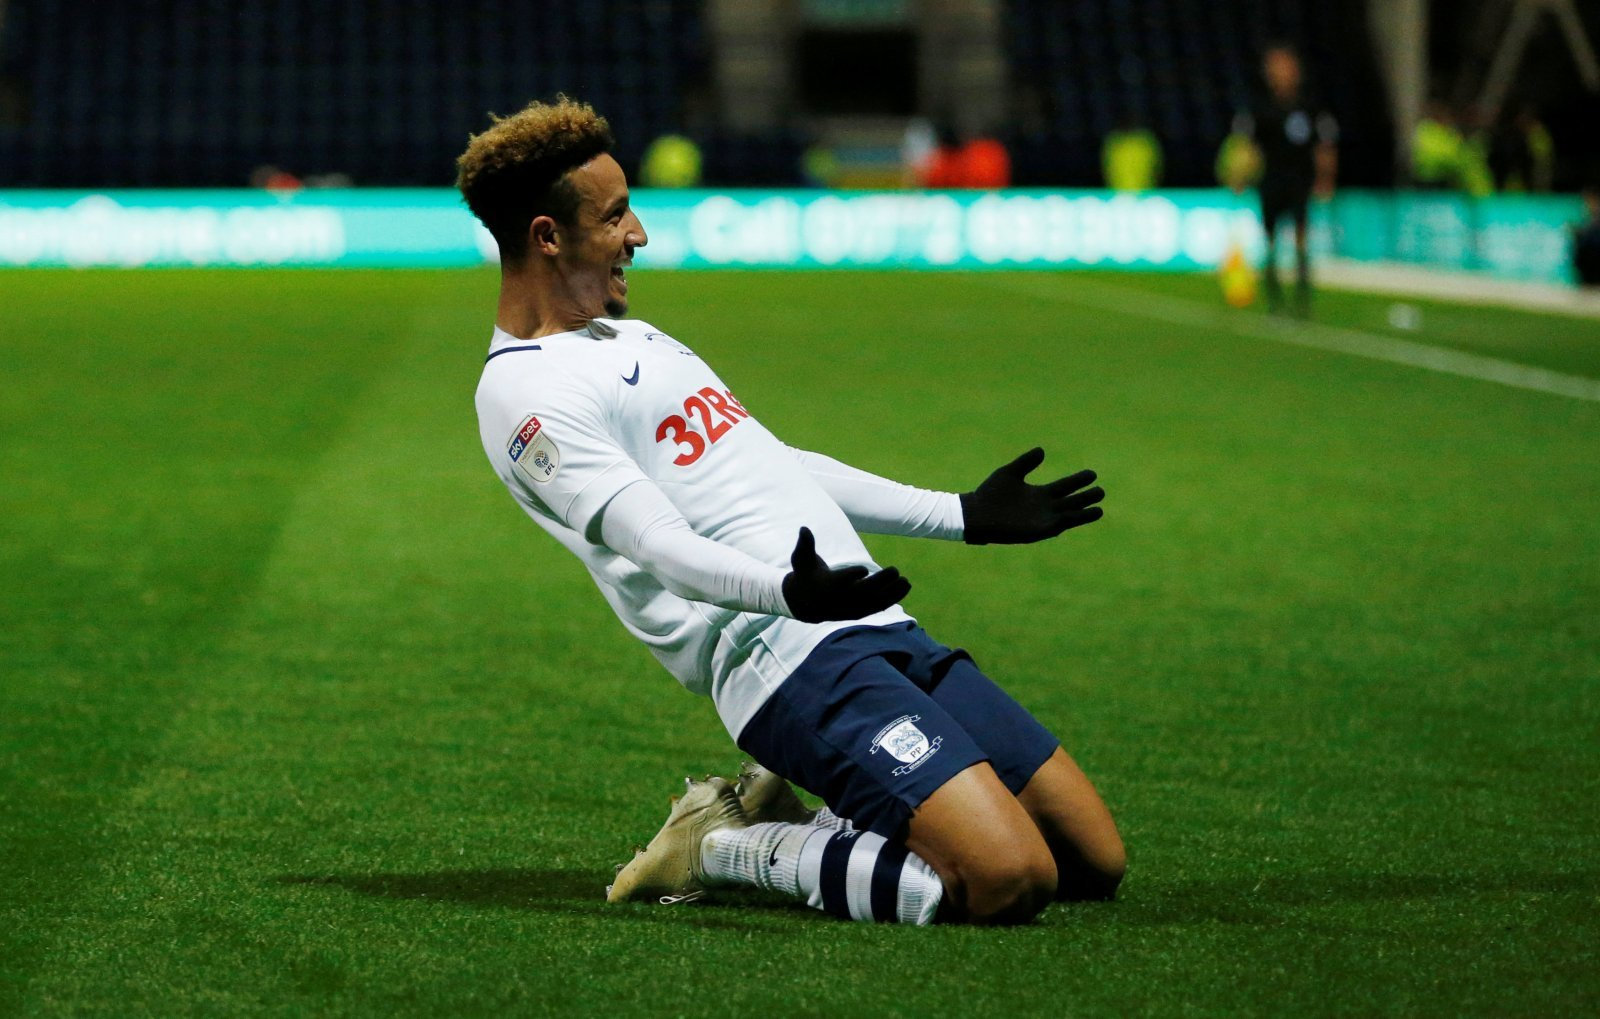 Sheffield United: Blades' £6m bid for Callum Robinson accepted by Preston North End